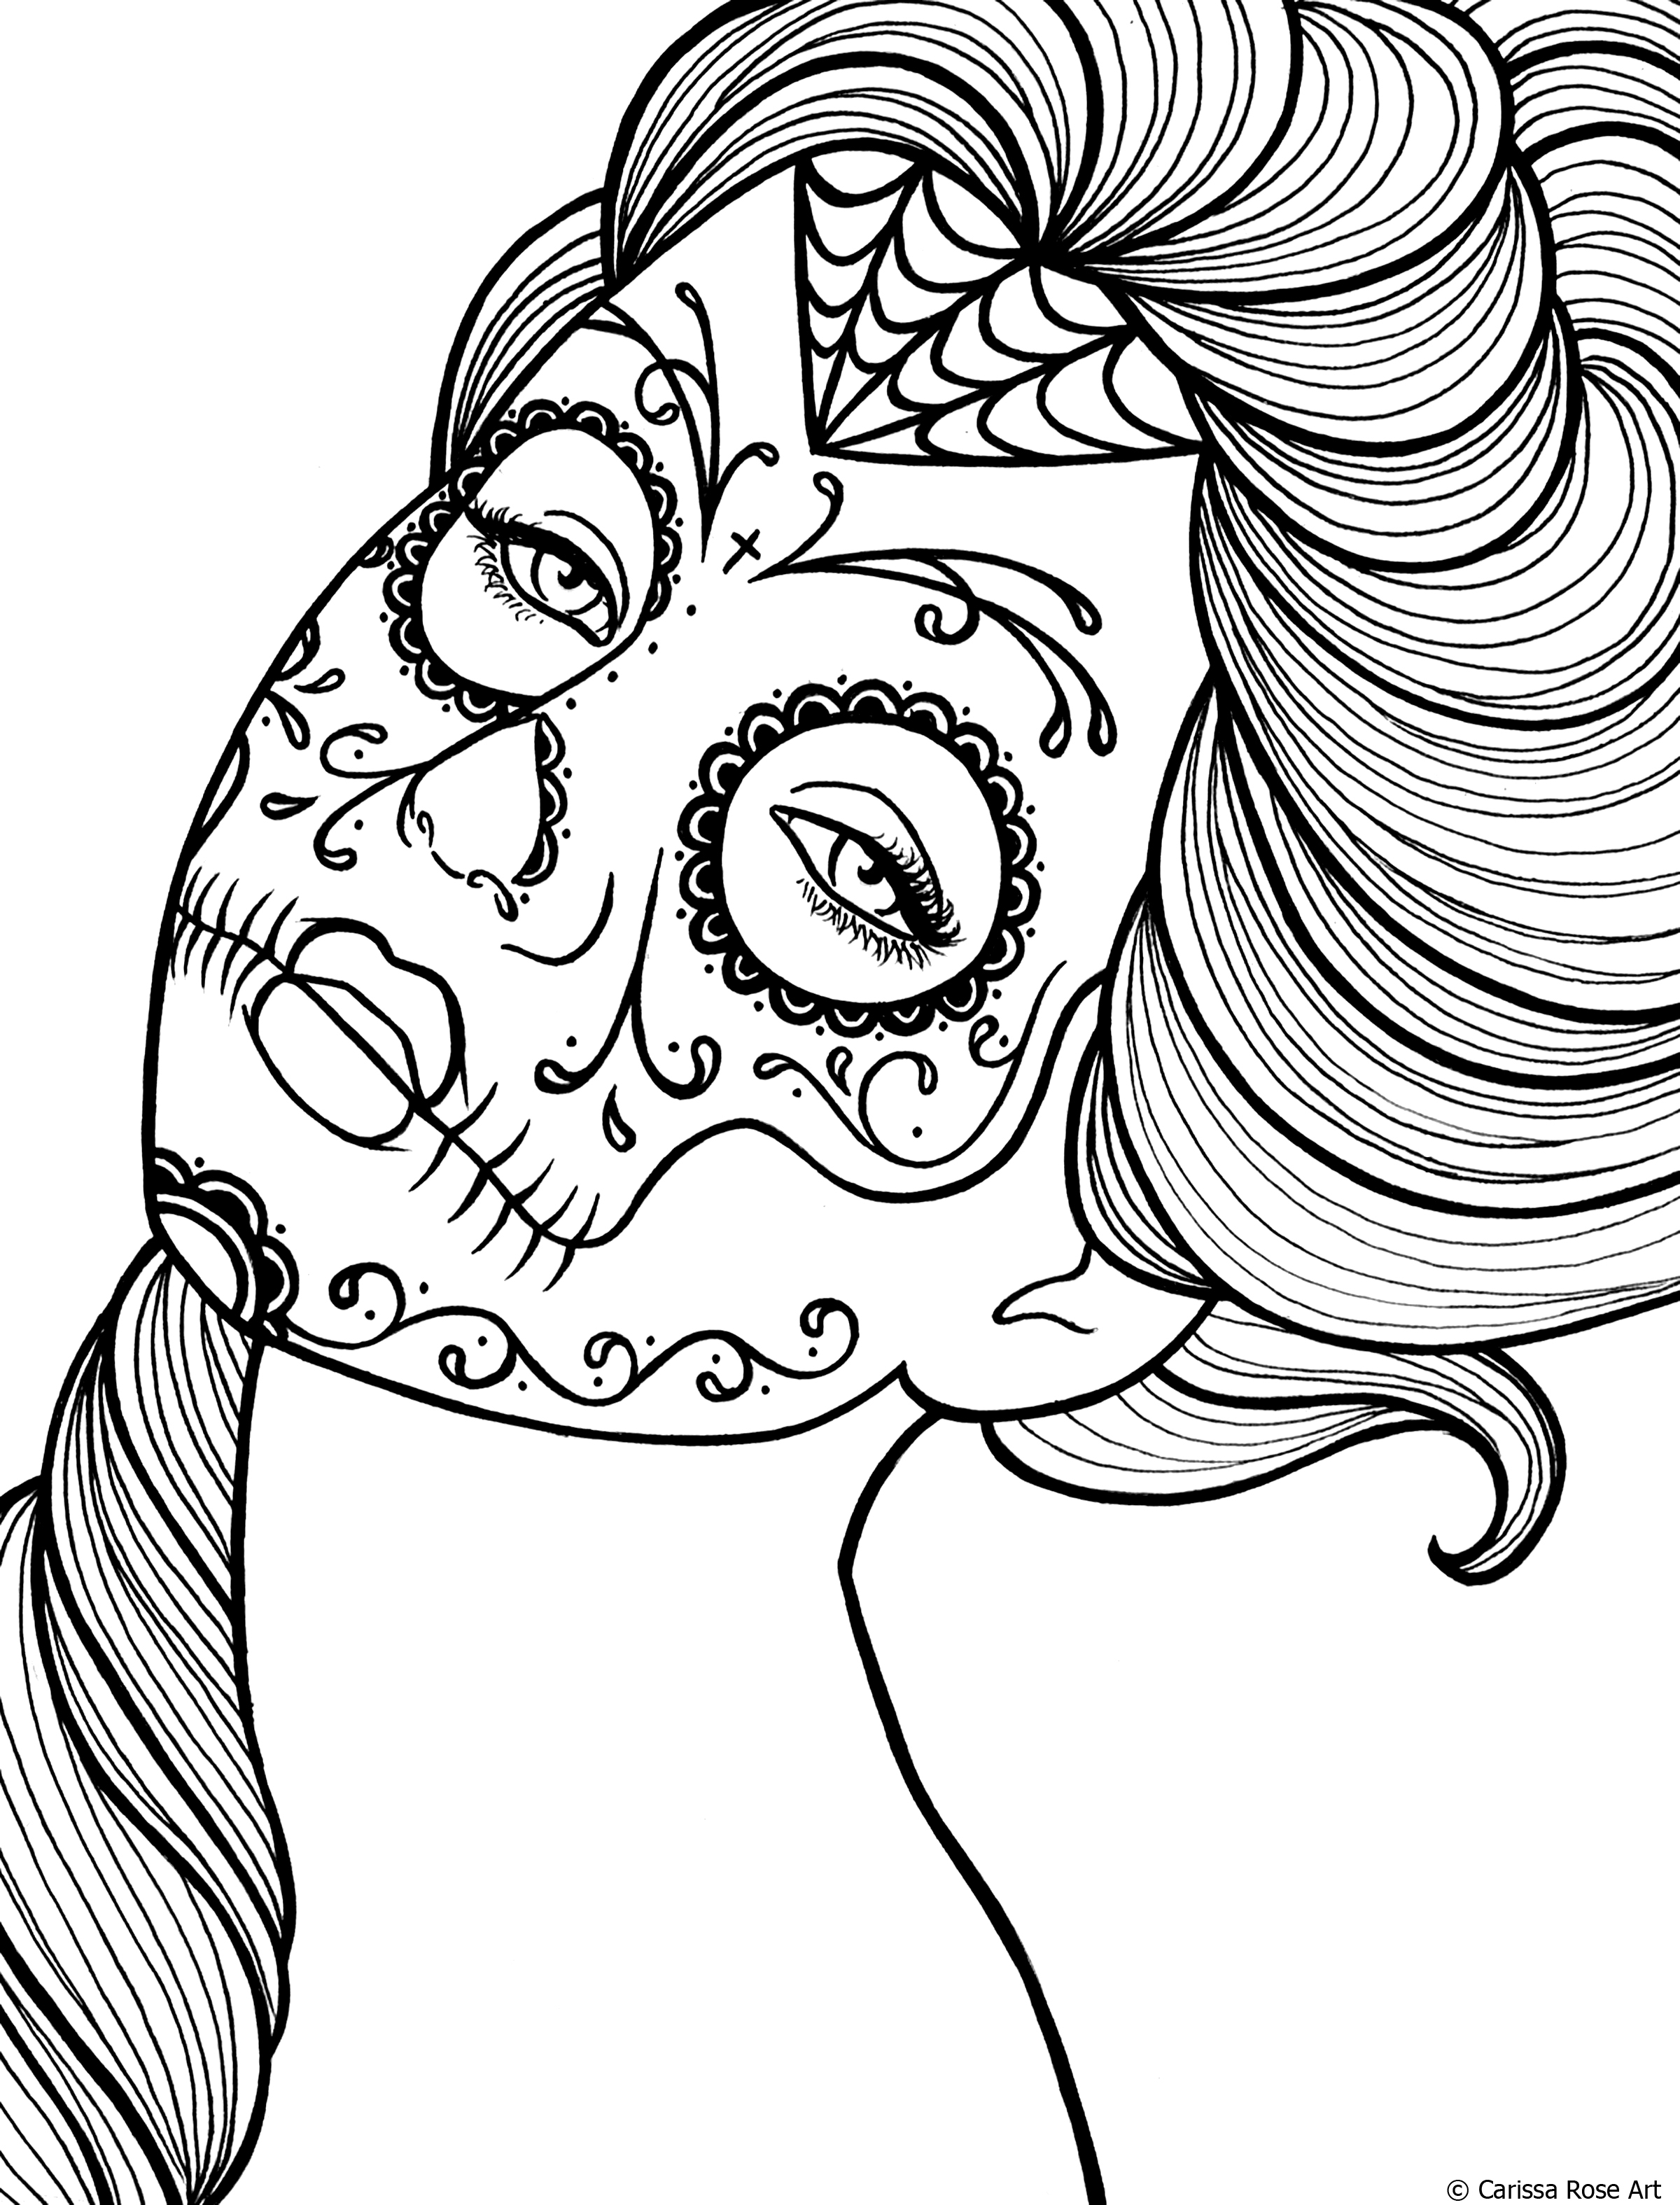 day of the dead coloring sheets free printable day of the dead coloring pages best dead the of coloring day sheets